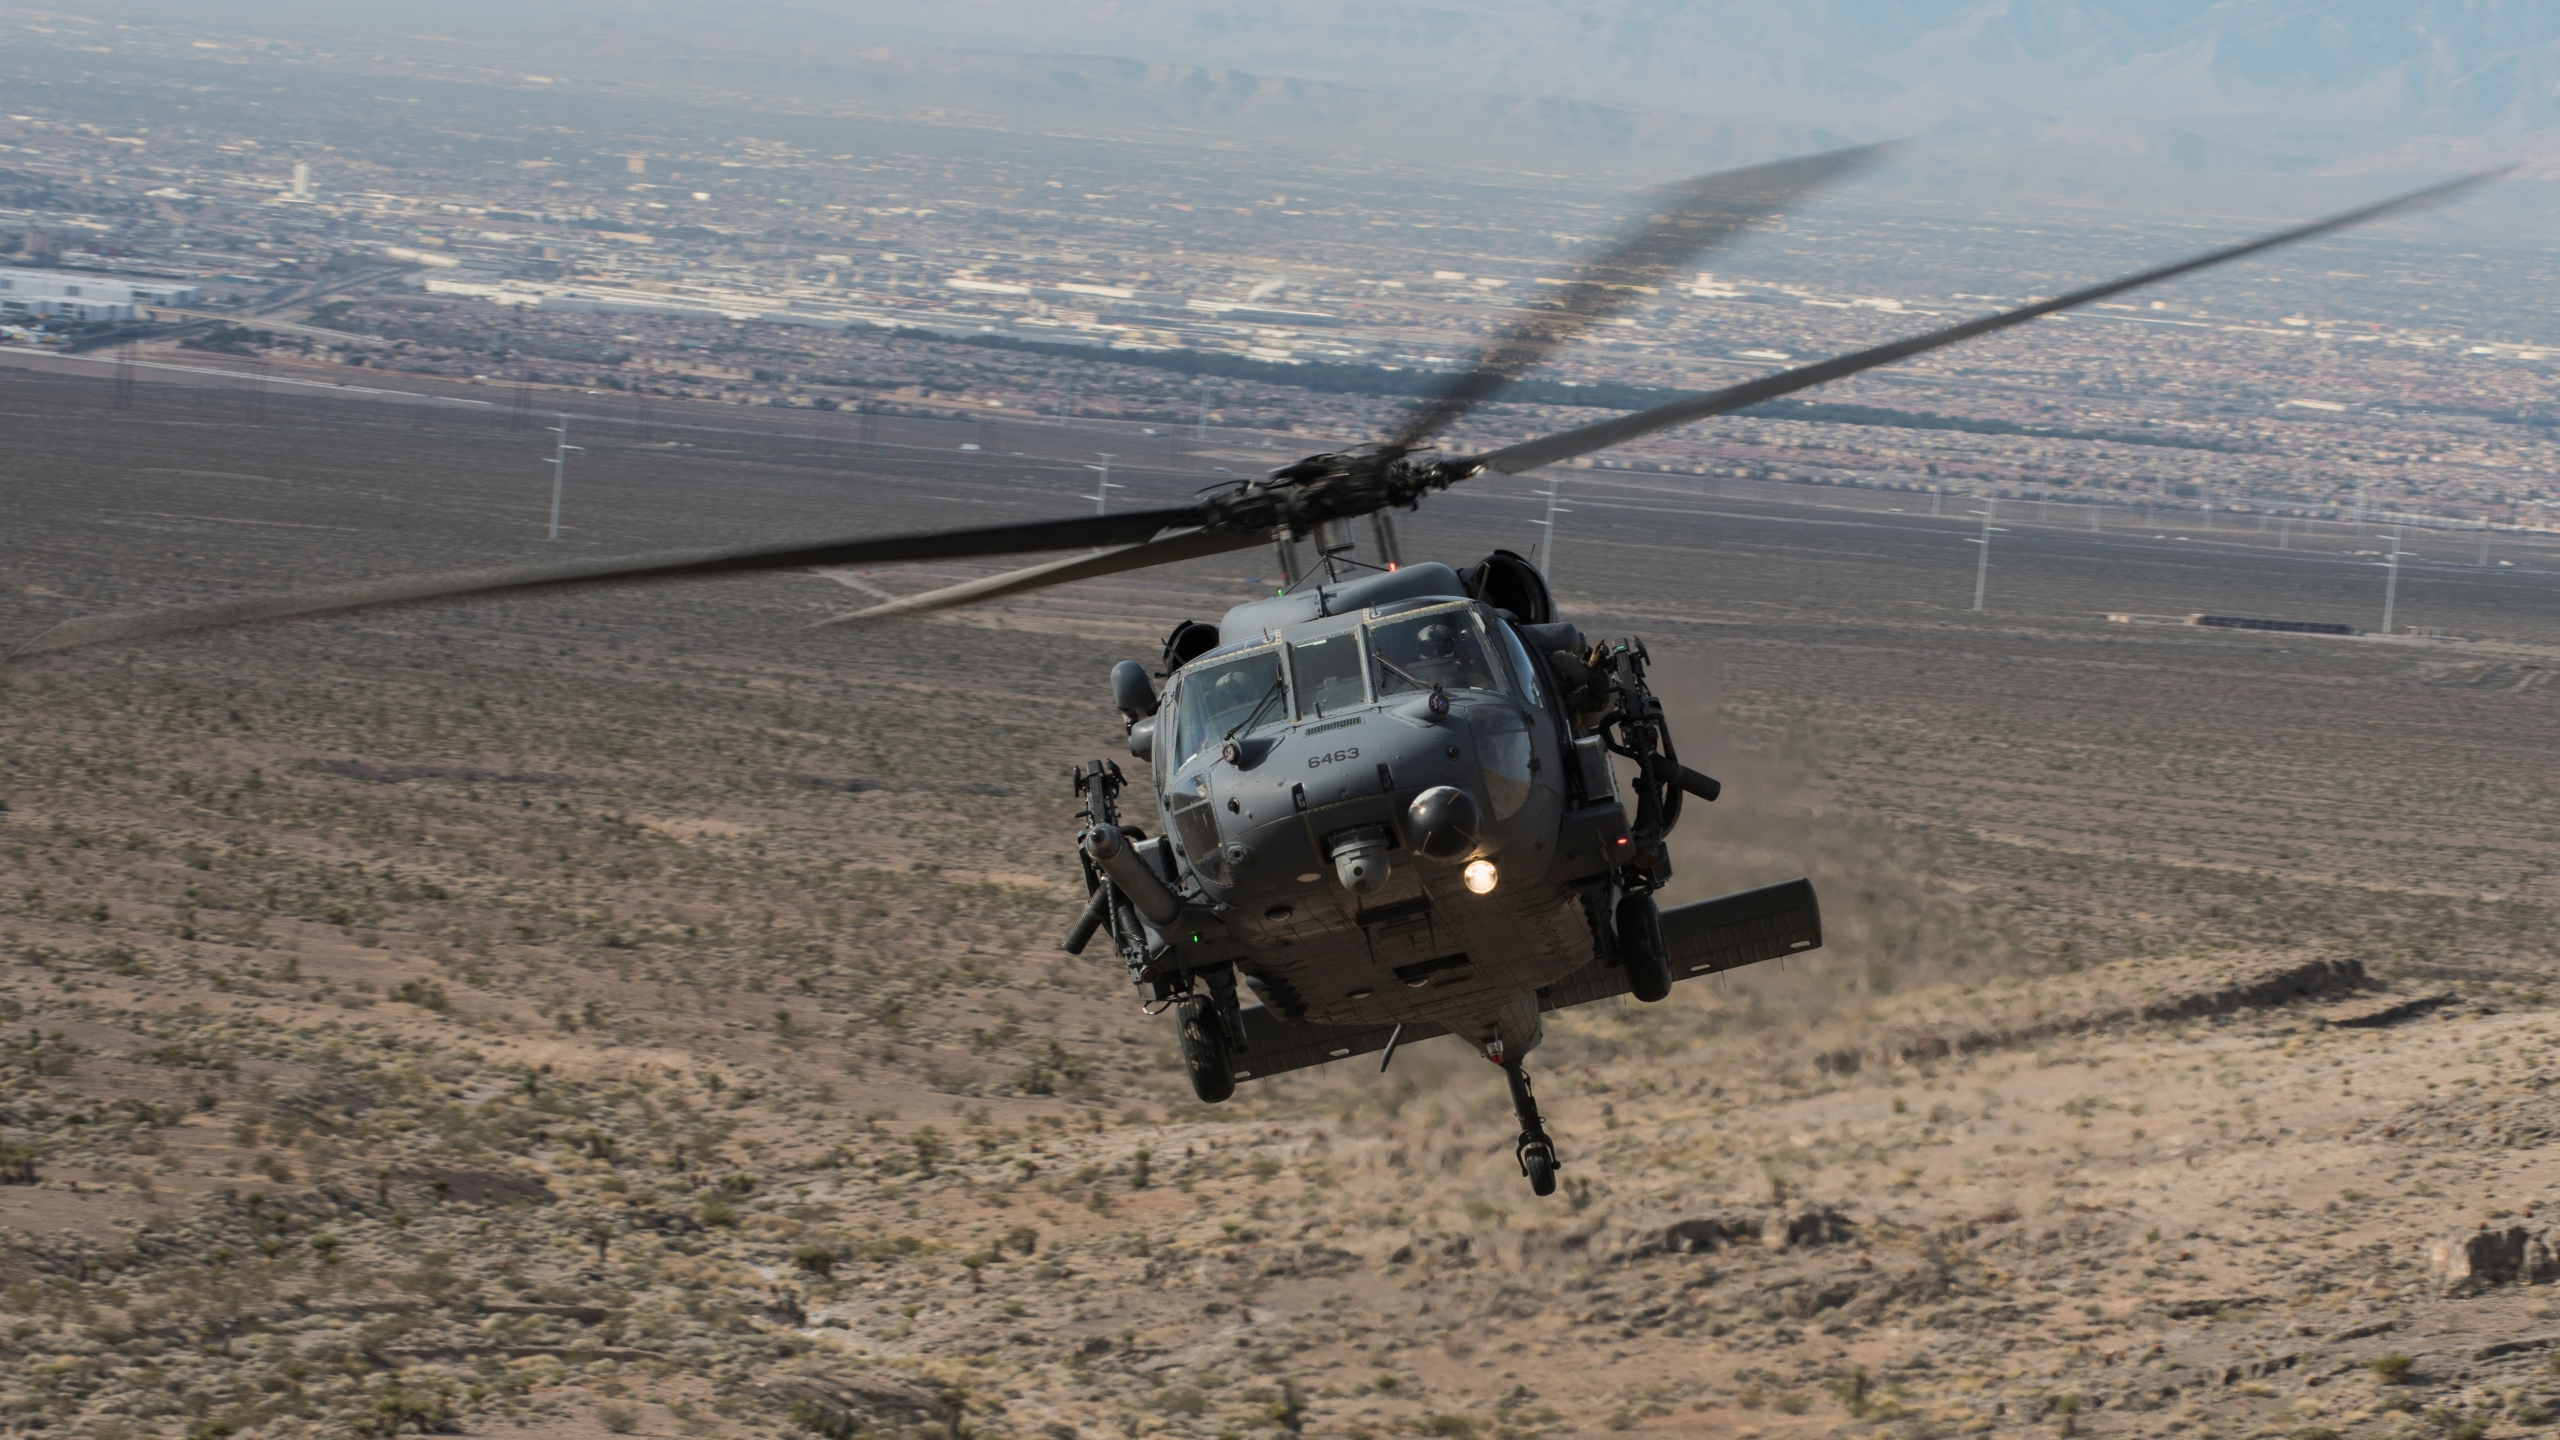 An HH-60G Pave Hawk helicopter assigned to the 66th Rescue Squadron flies during training on Nellis Air Force Base, Nevada, Feb. 22, 2018. (Credit: U.S. Air Force / Senior Airman Kevin Tanenbaum)